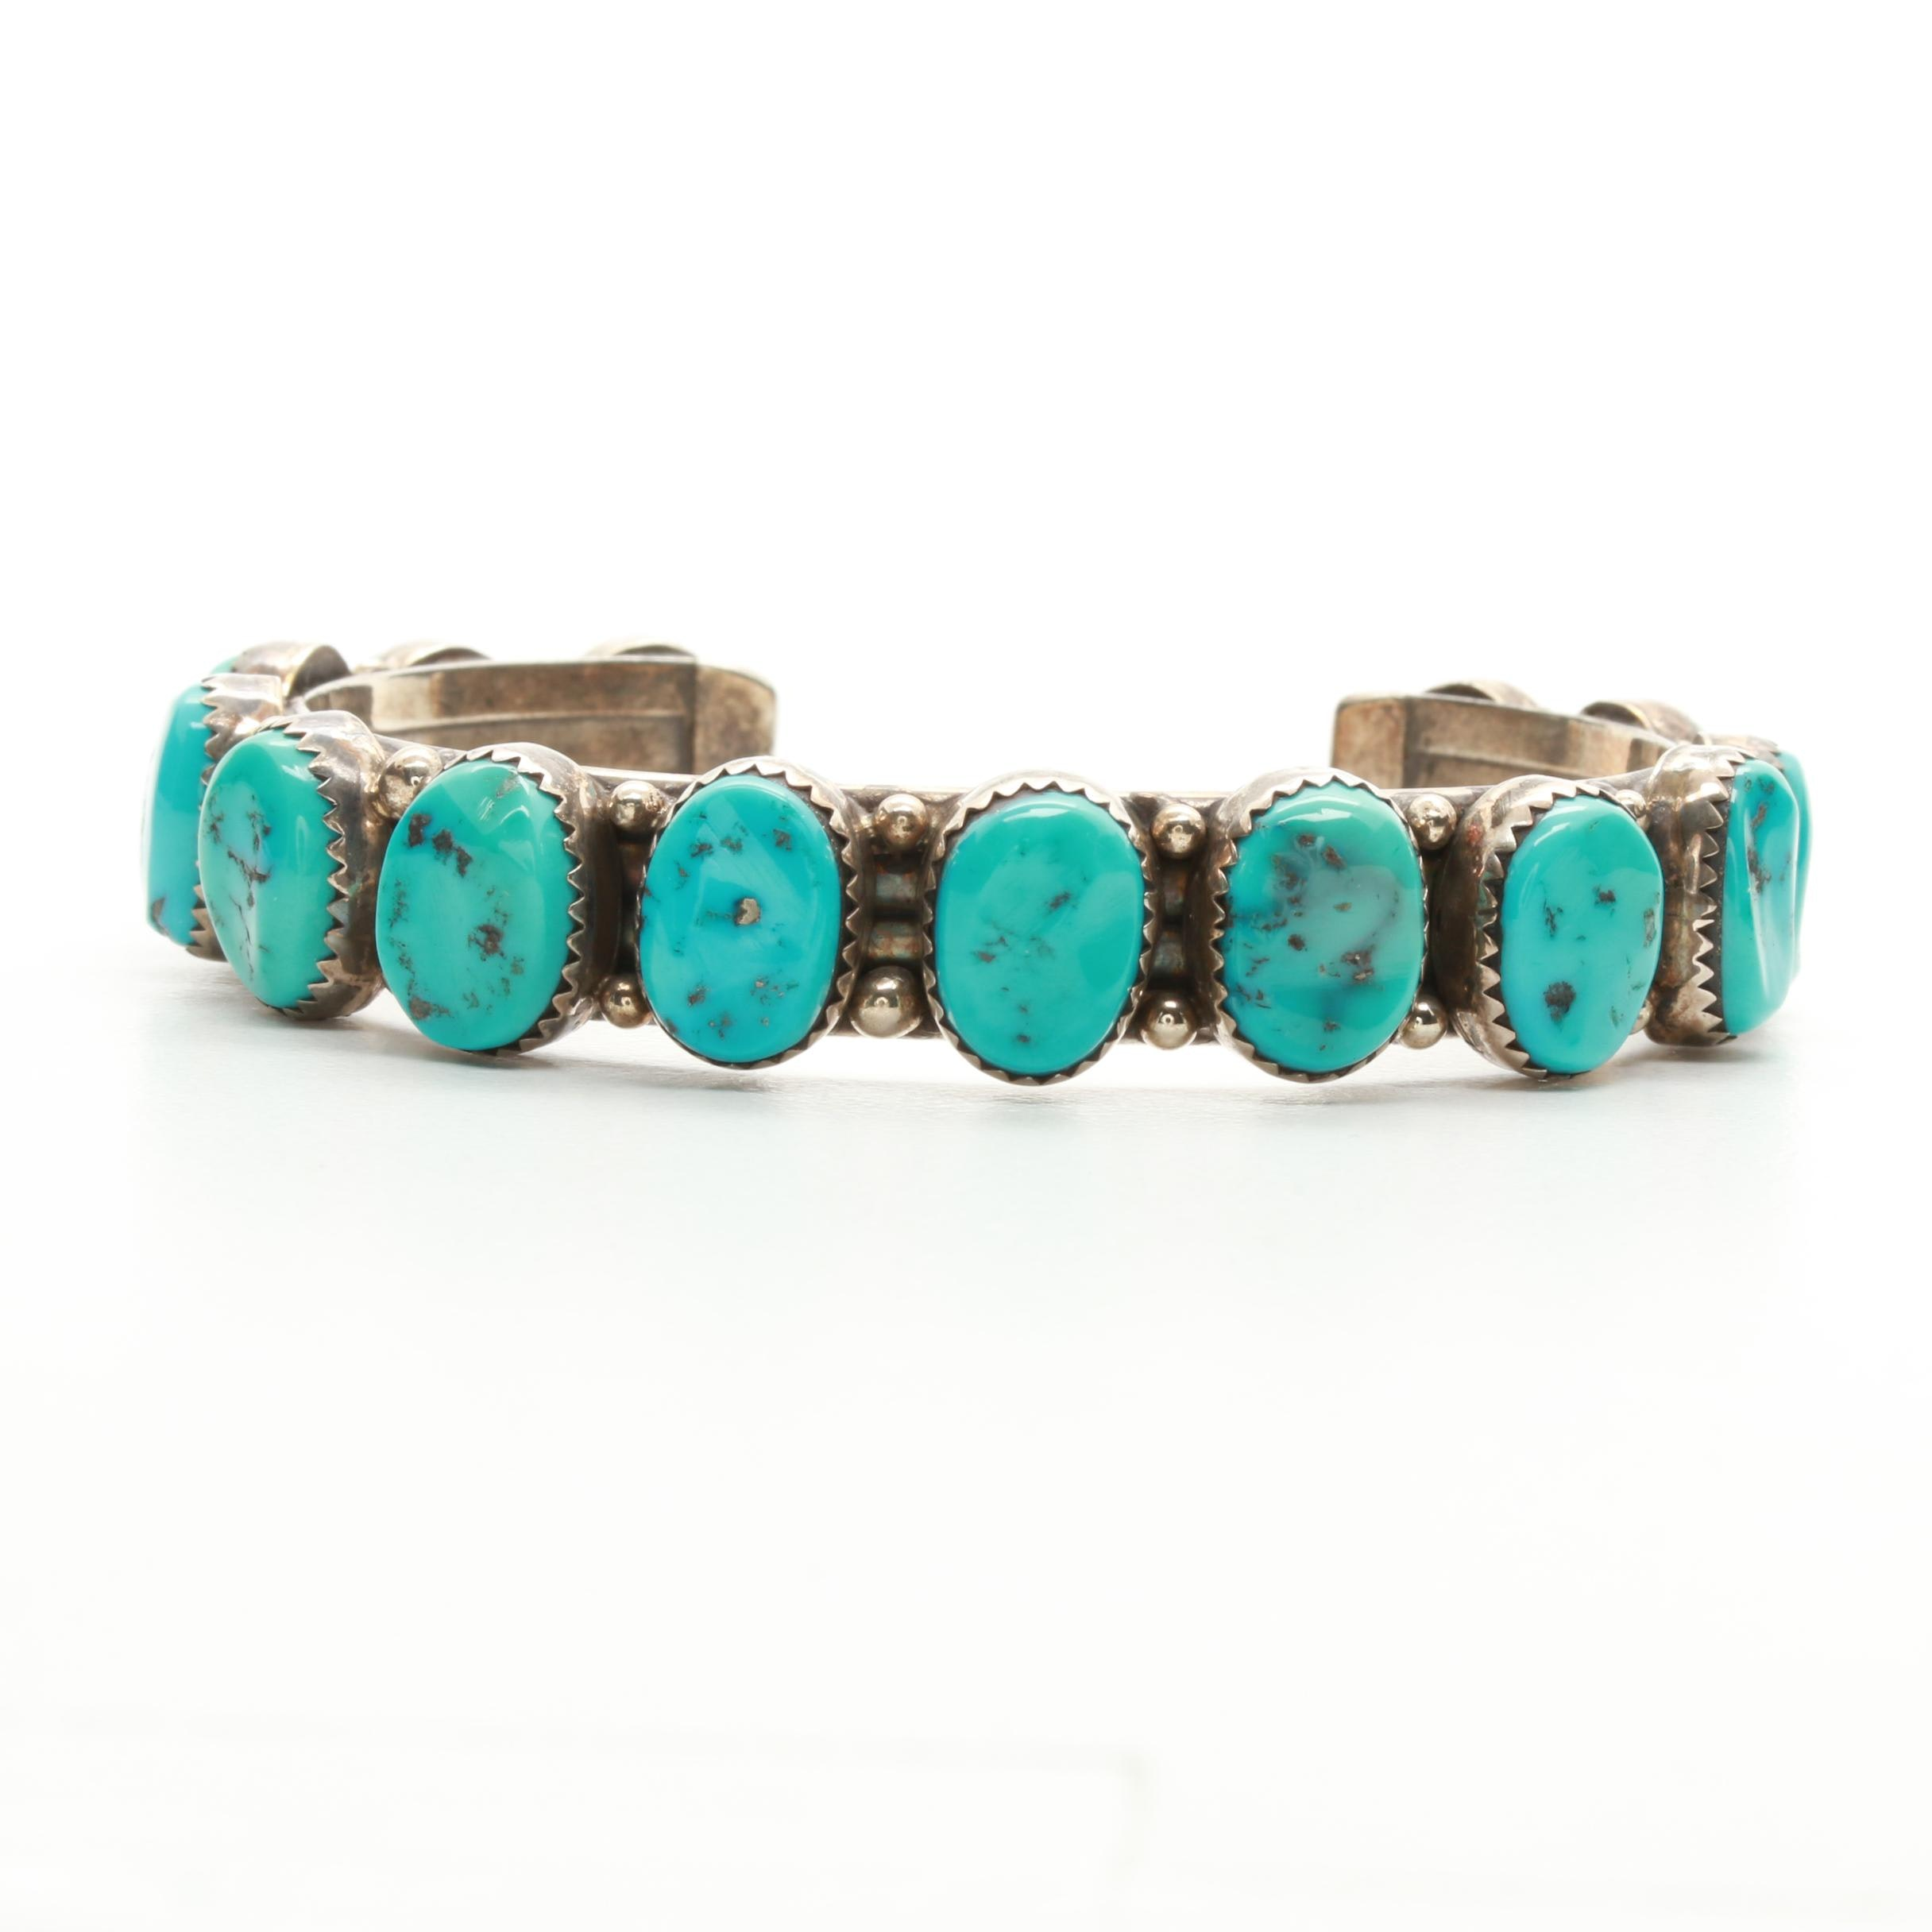 Southwest Style Sterling Silver Stabilized Turquoise Cuff Bracelet